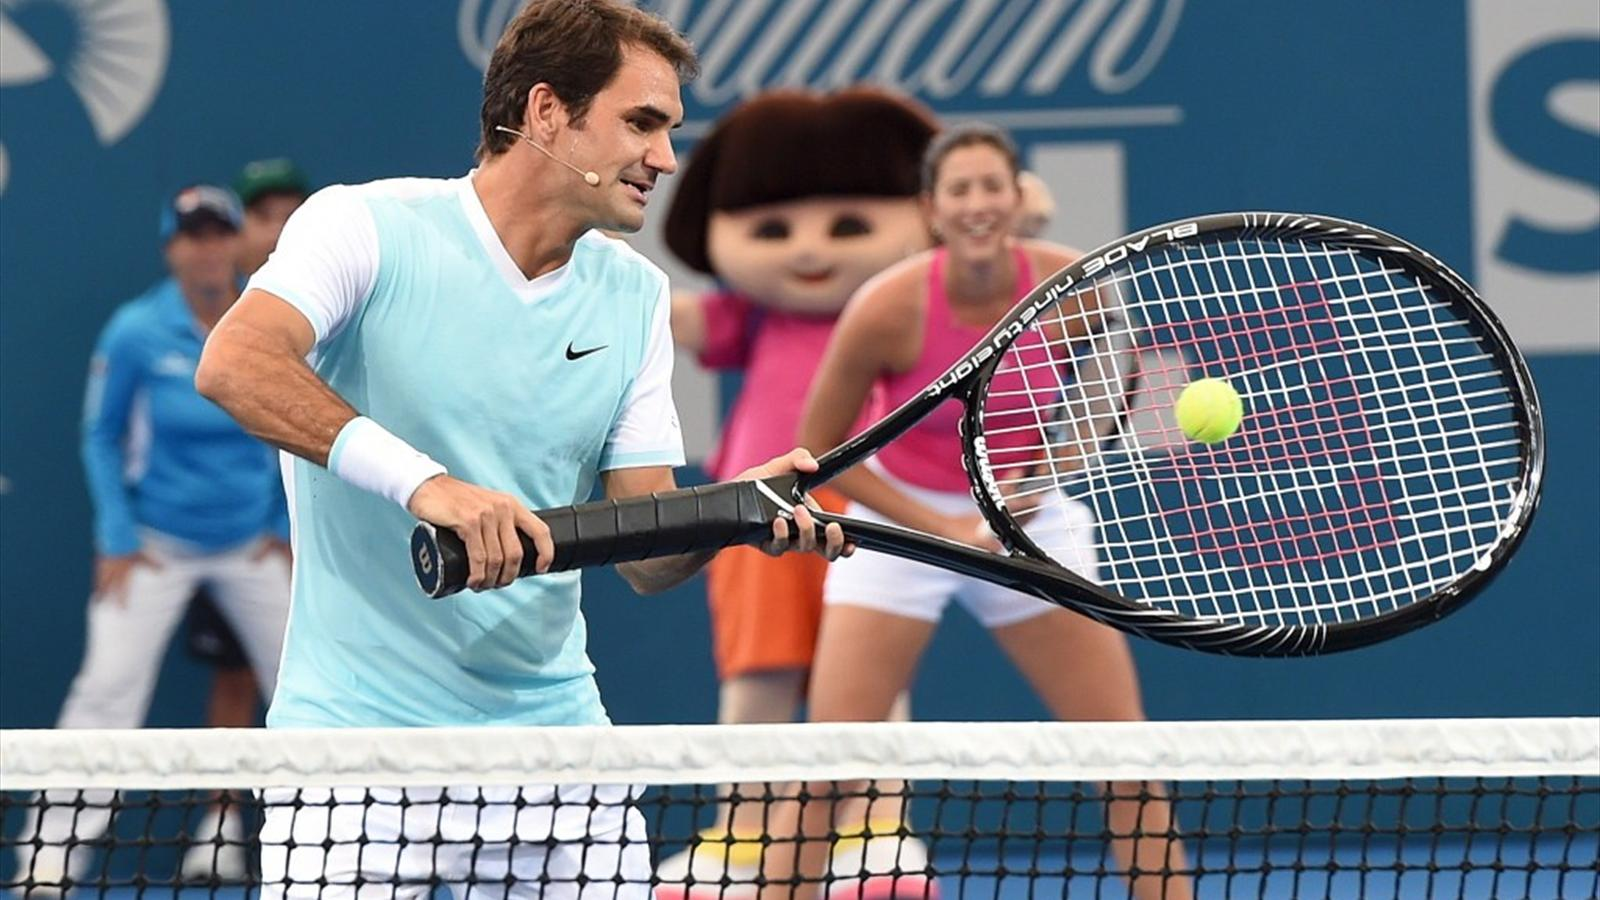 titillating tennis player can't believe the size of his racket  85348